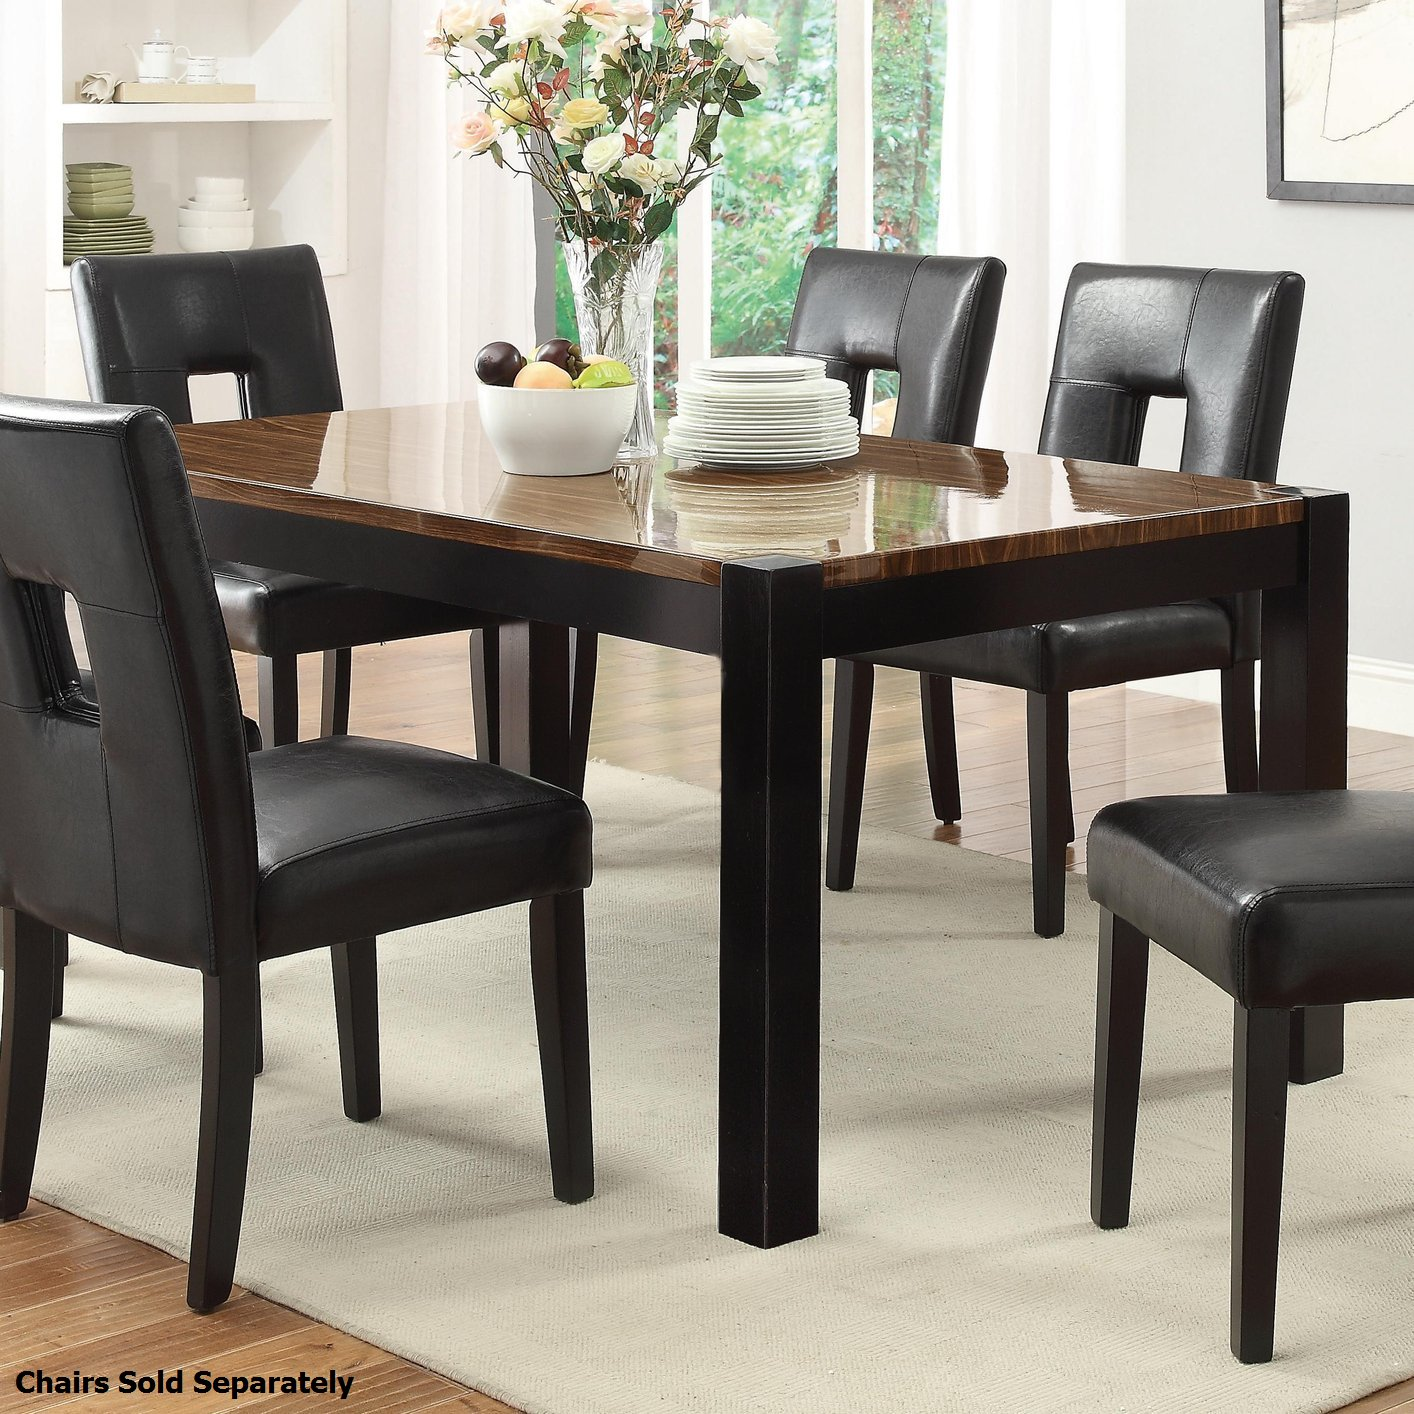 Coaster 103611 Black Wood Dining Table  StealASofa Furniture Outlet Los Angeles CA